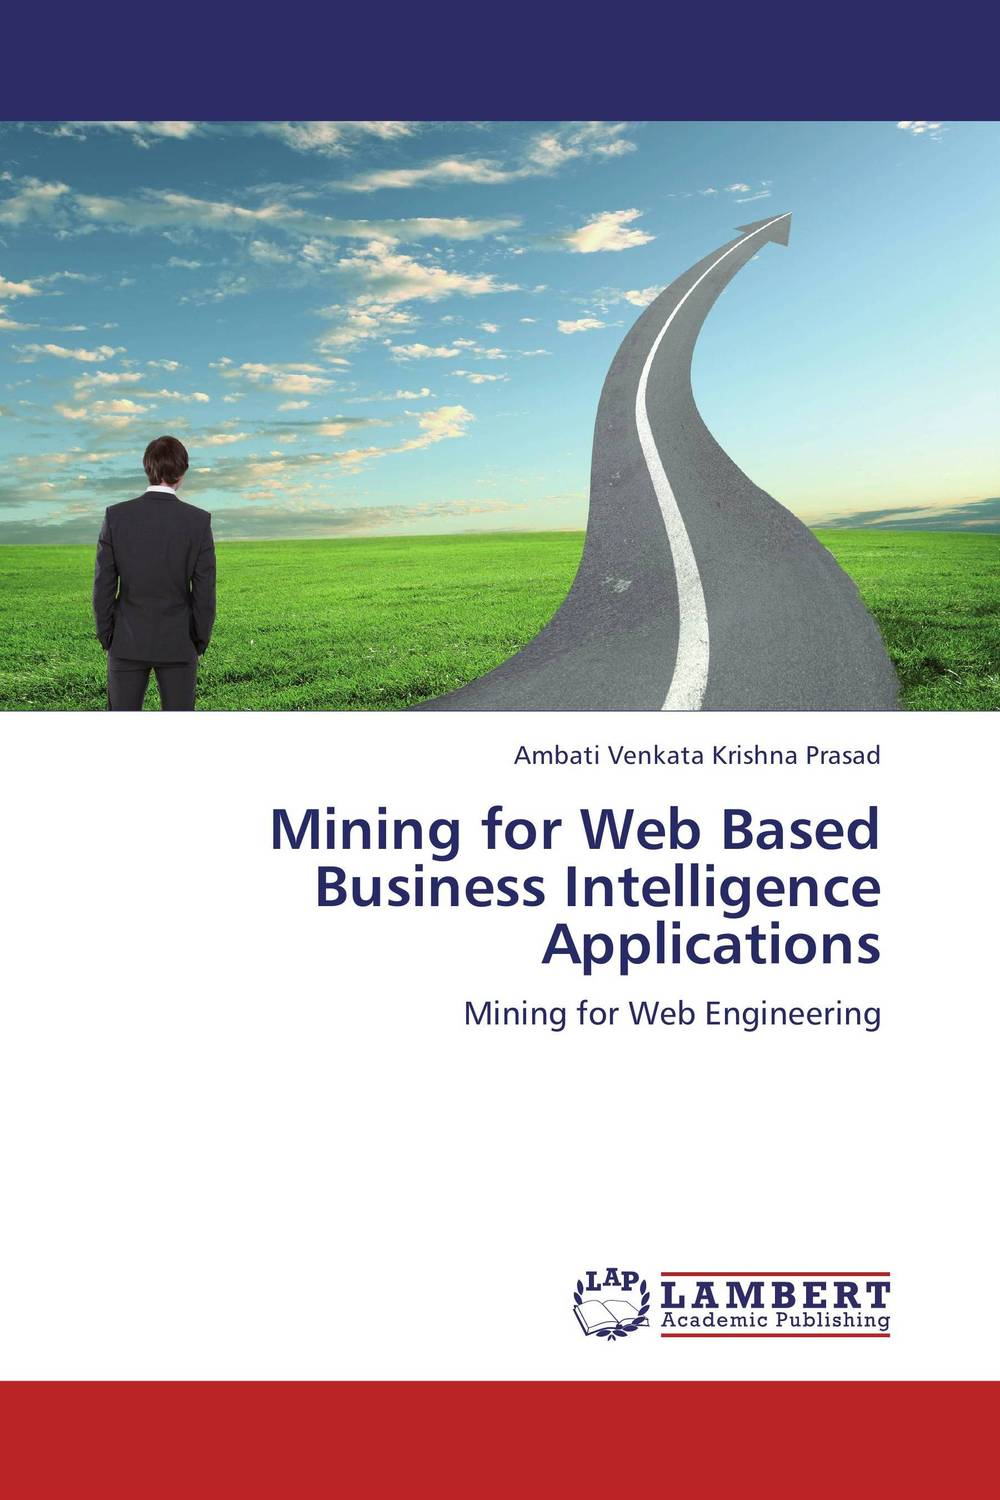 Mining for Web Based Business Intelligence Applications overview of web based business